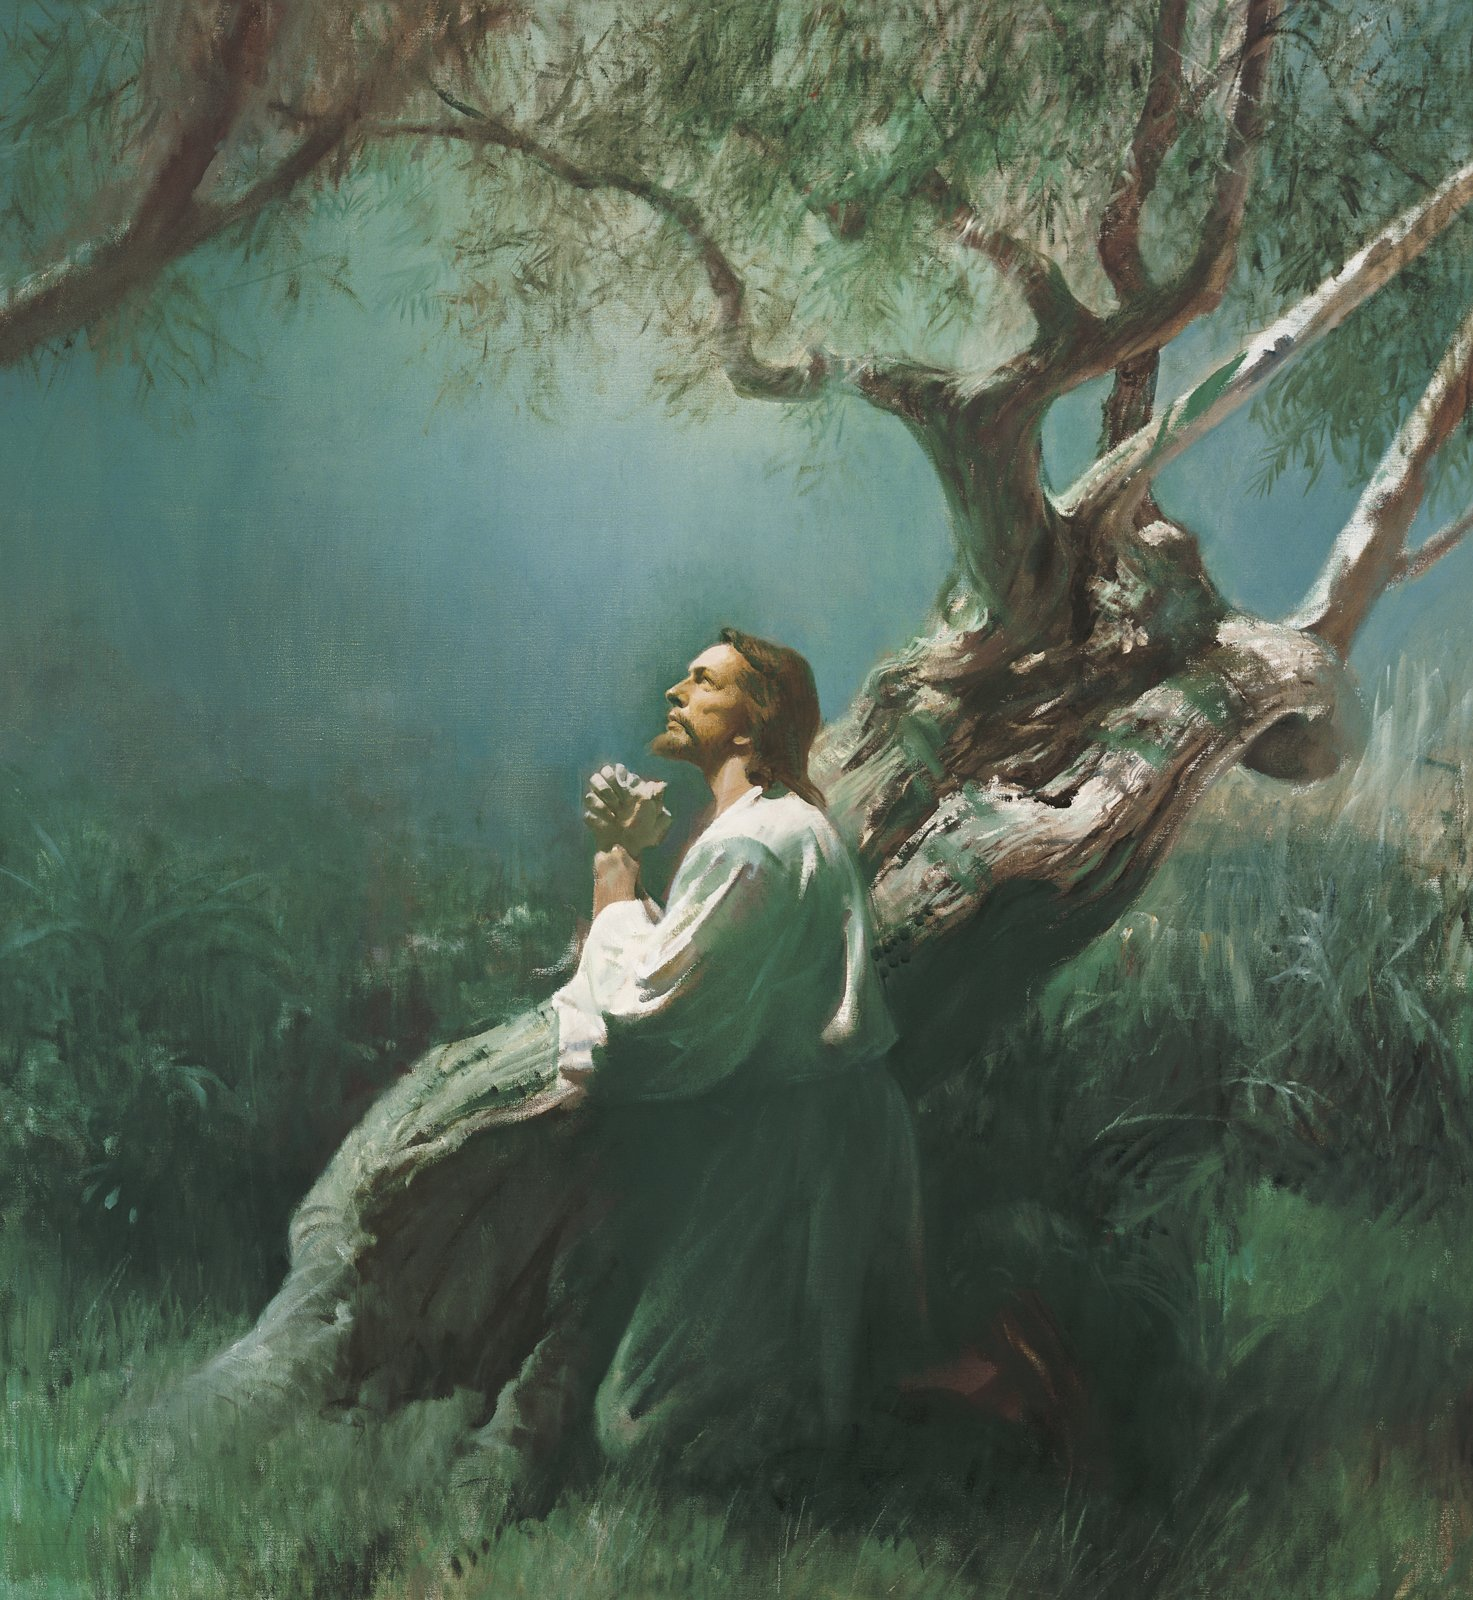 """Book of Mormon Lesson 8: """"O How Great the Goodness of Our God"""""""